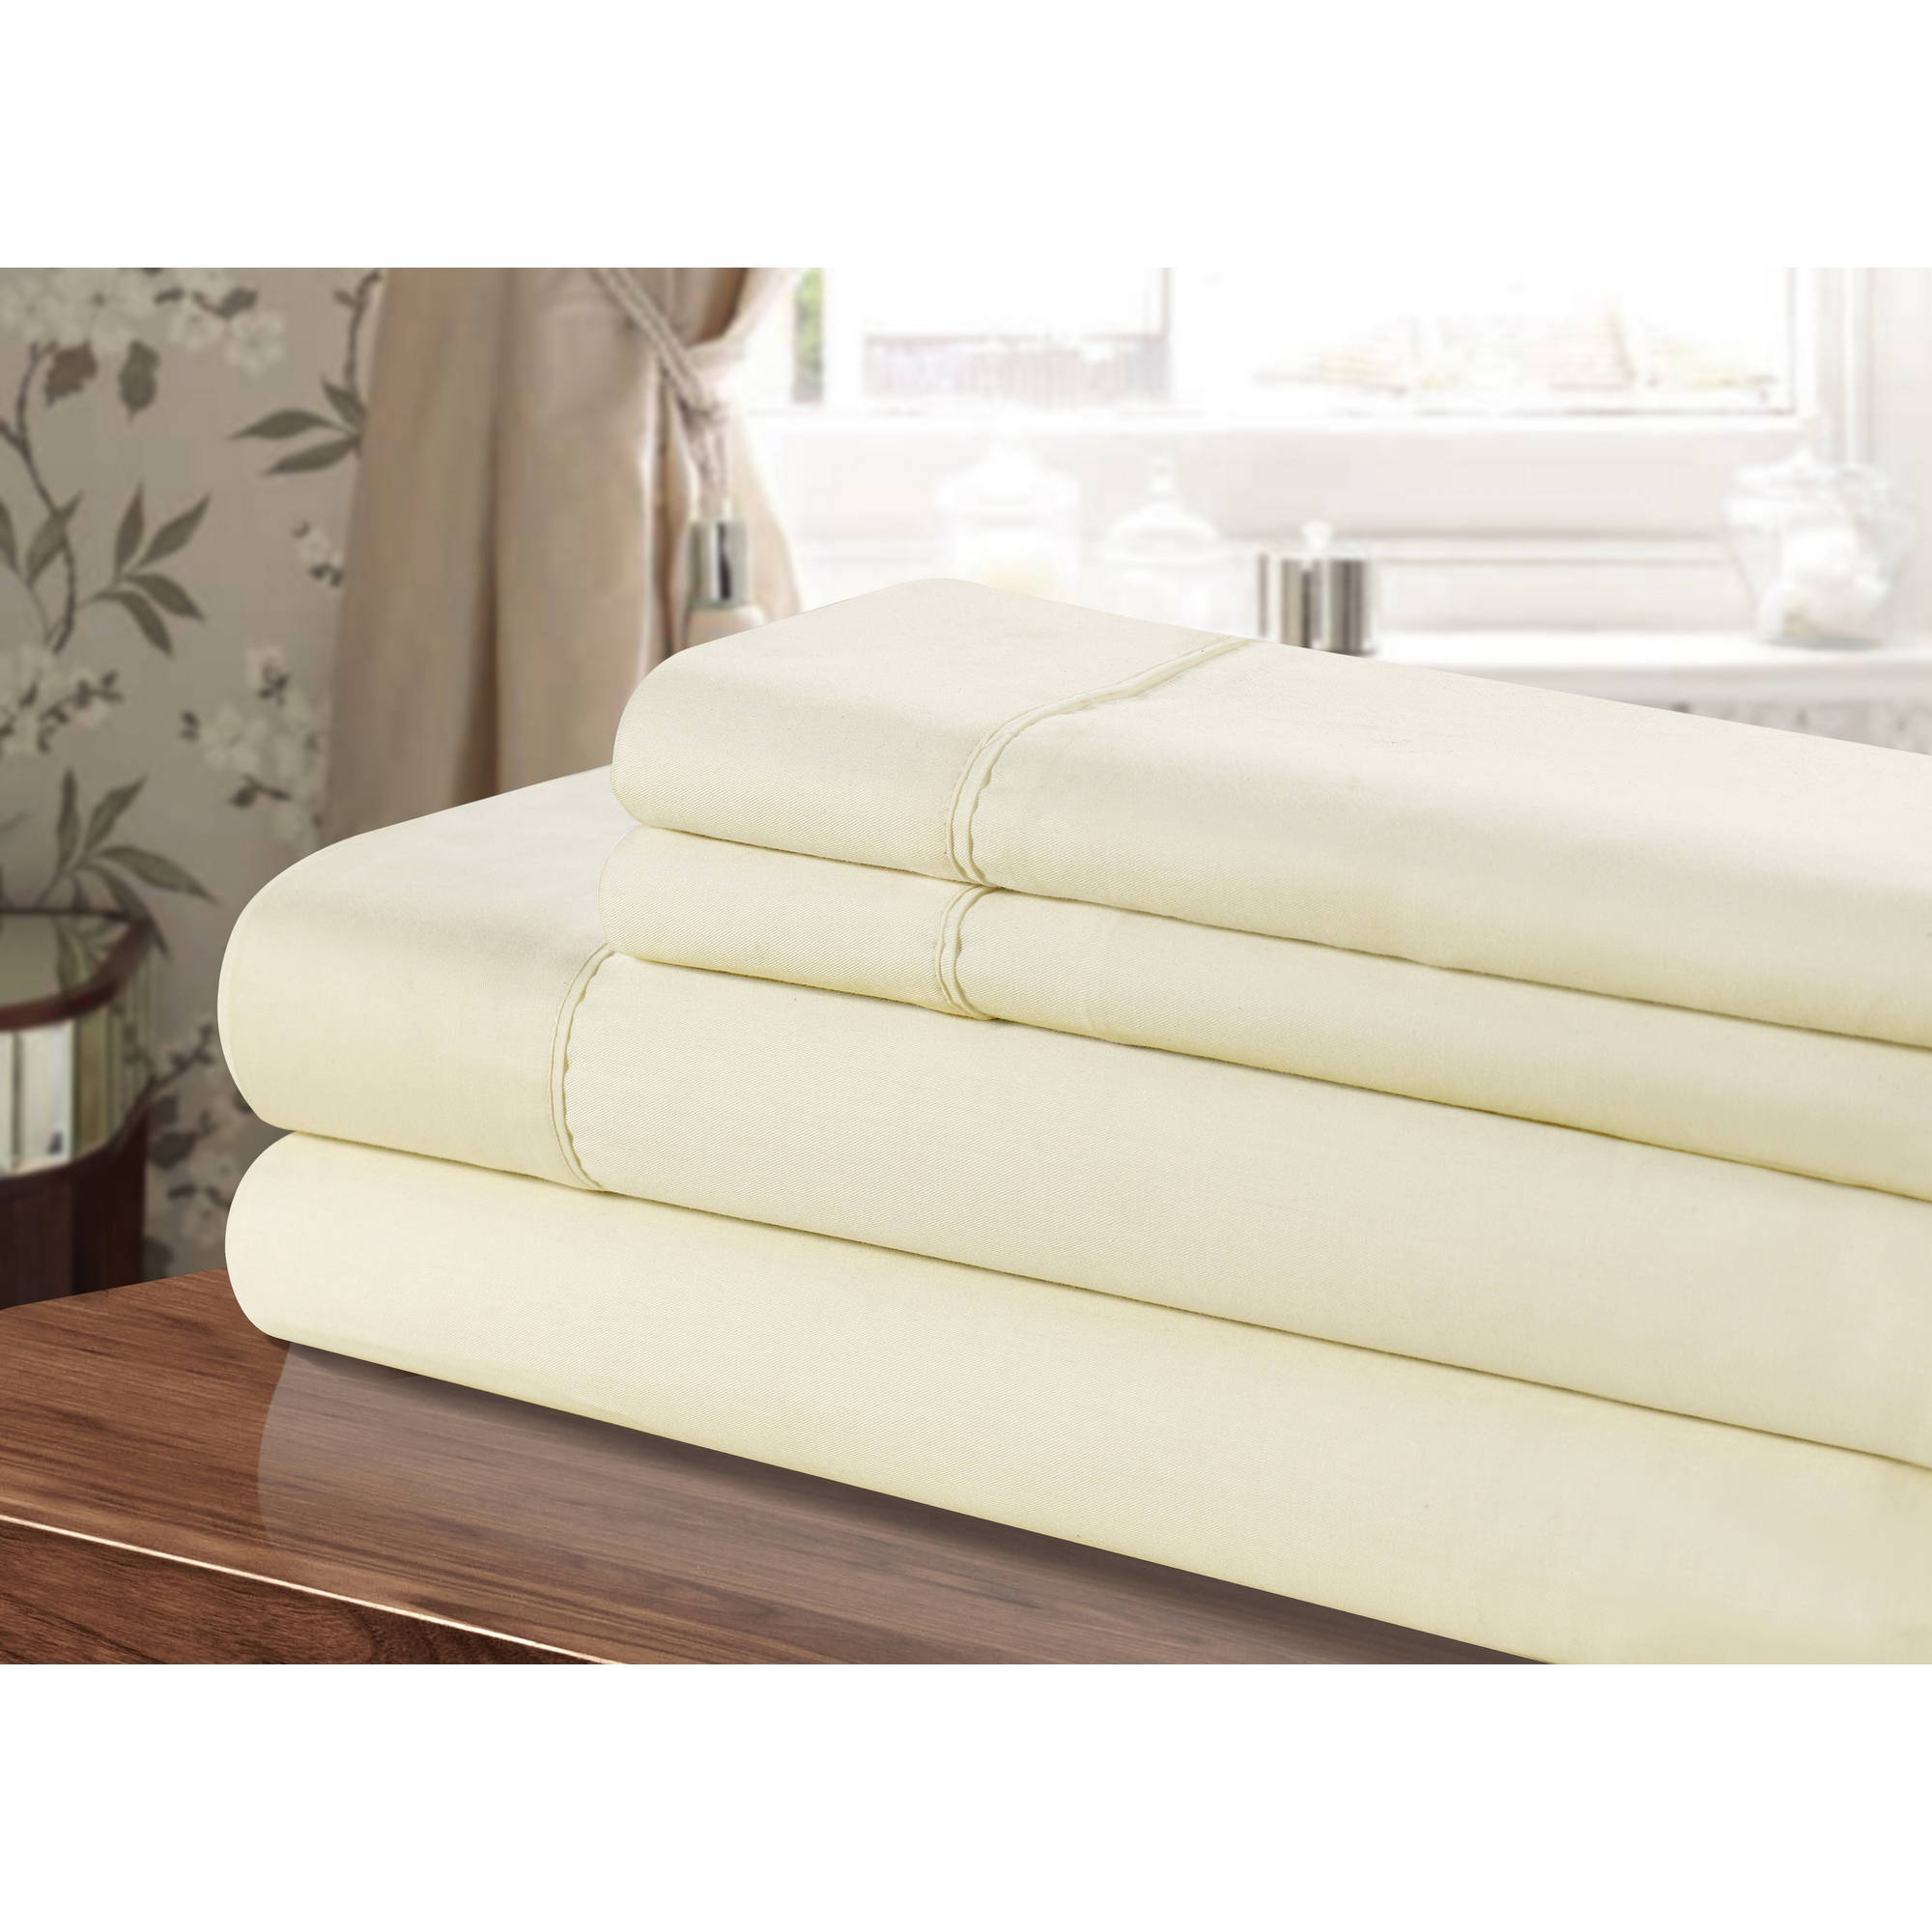 Chic Home Vibra 100 Percent Cotton Sheet Set